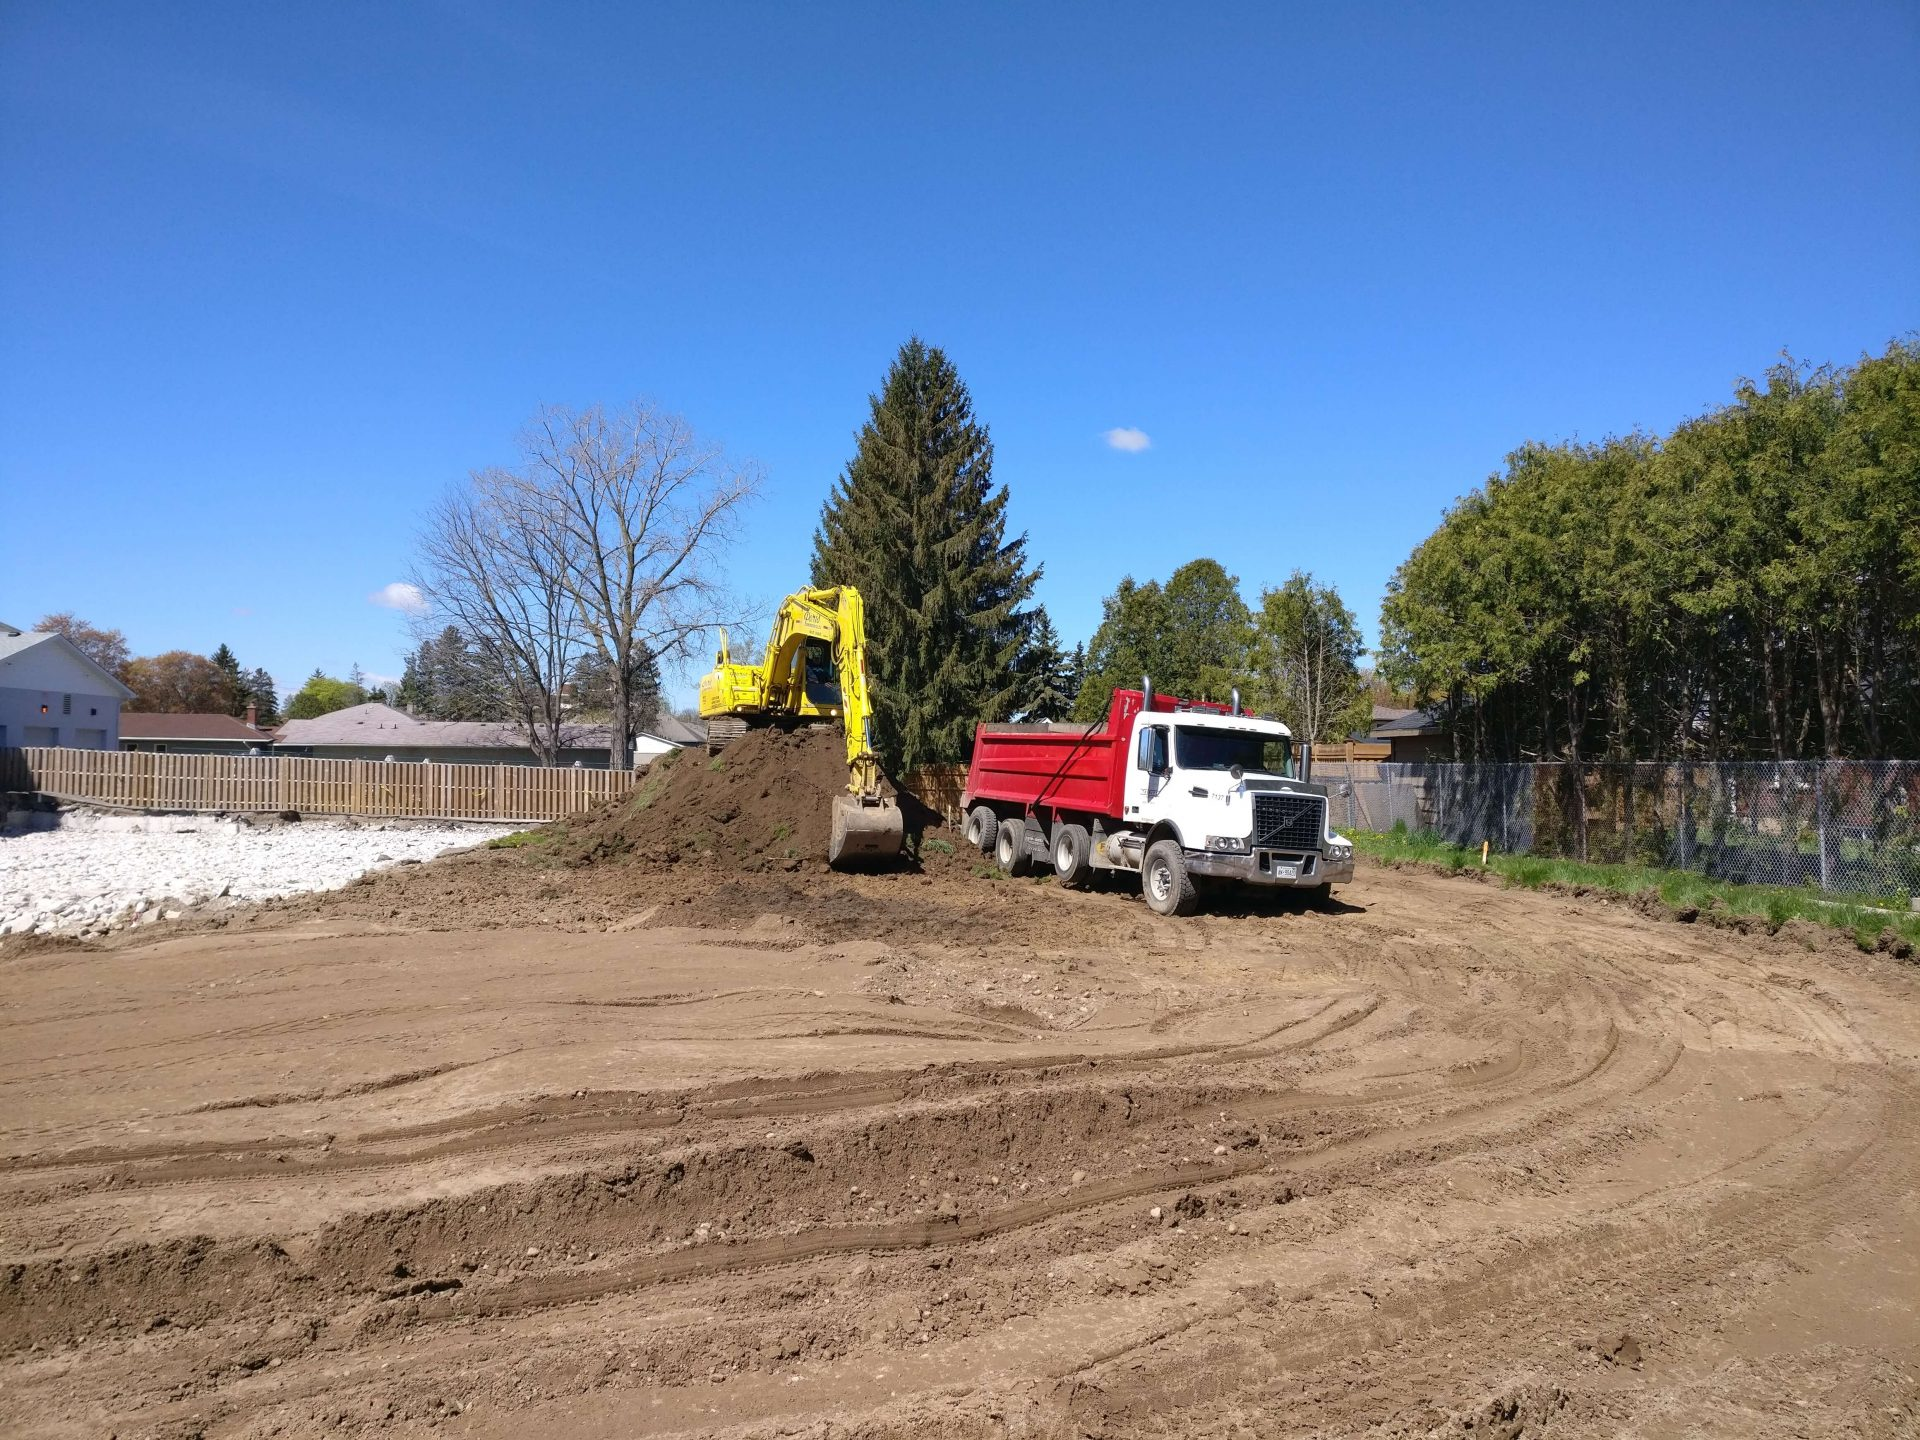 Digging process for parking lot installation